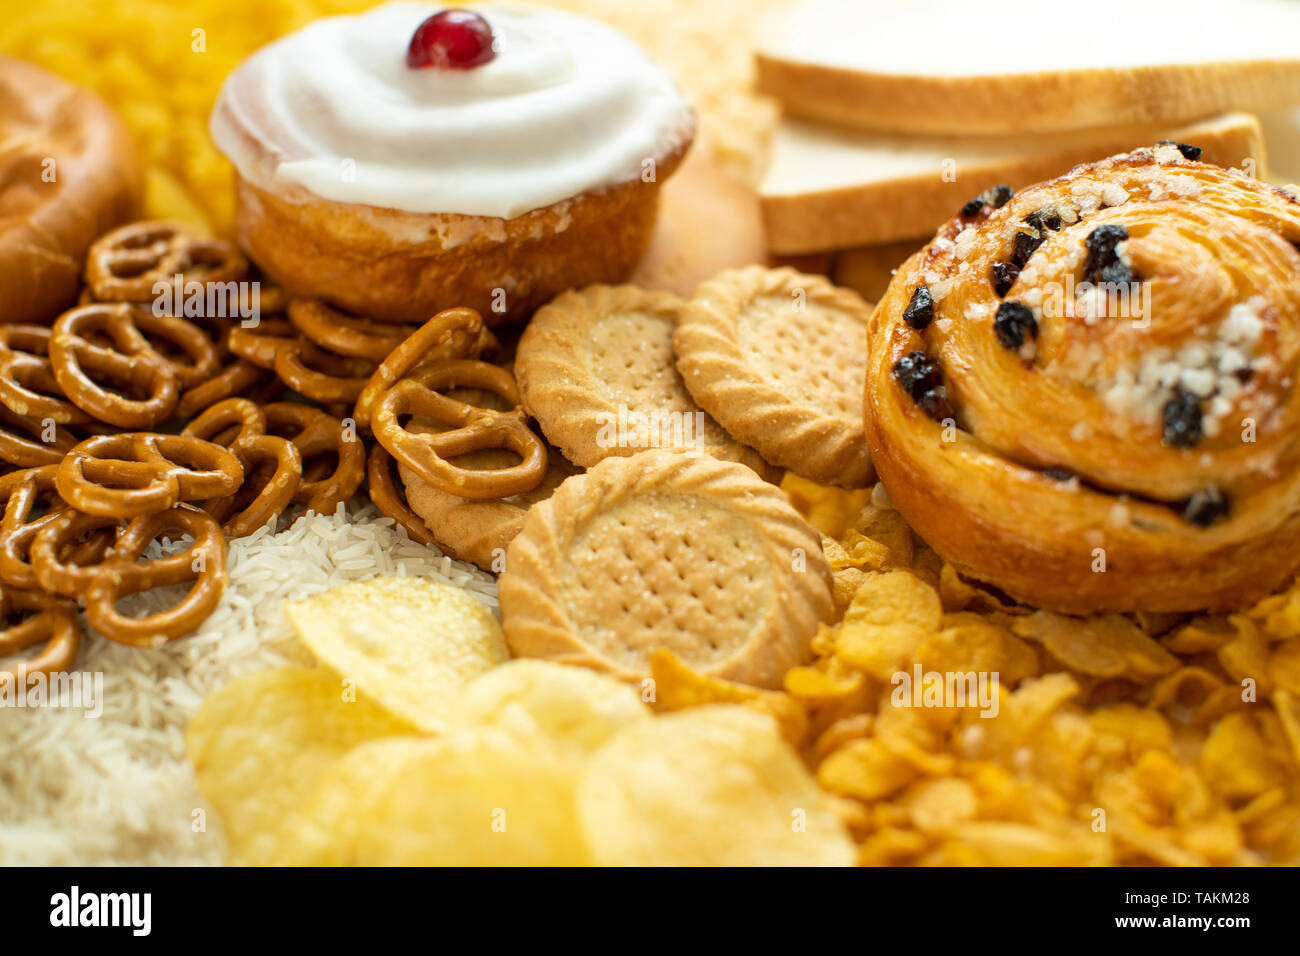 Full Frame Shot Of Foods Containing Unhealthy Or Bad Carbohydrates - Stock Image